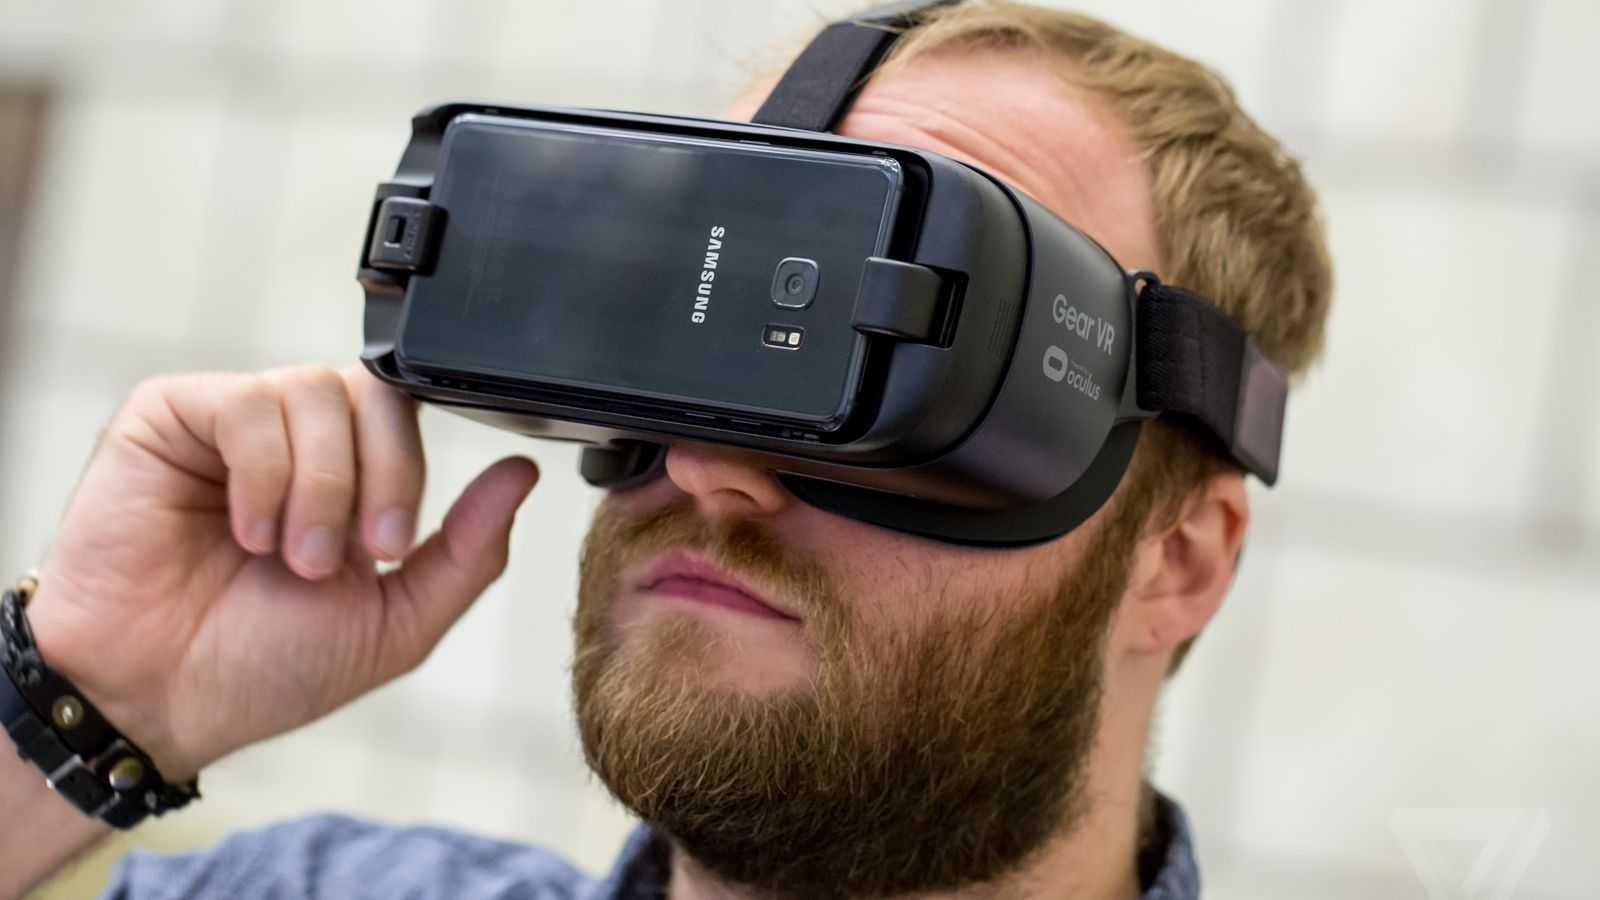 THE BEST HMD: THE BATTLE FOR YOUR HEAD HAS STARTED